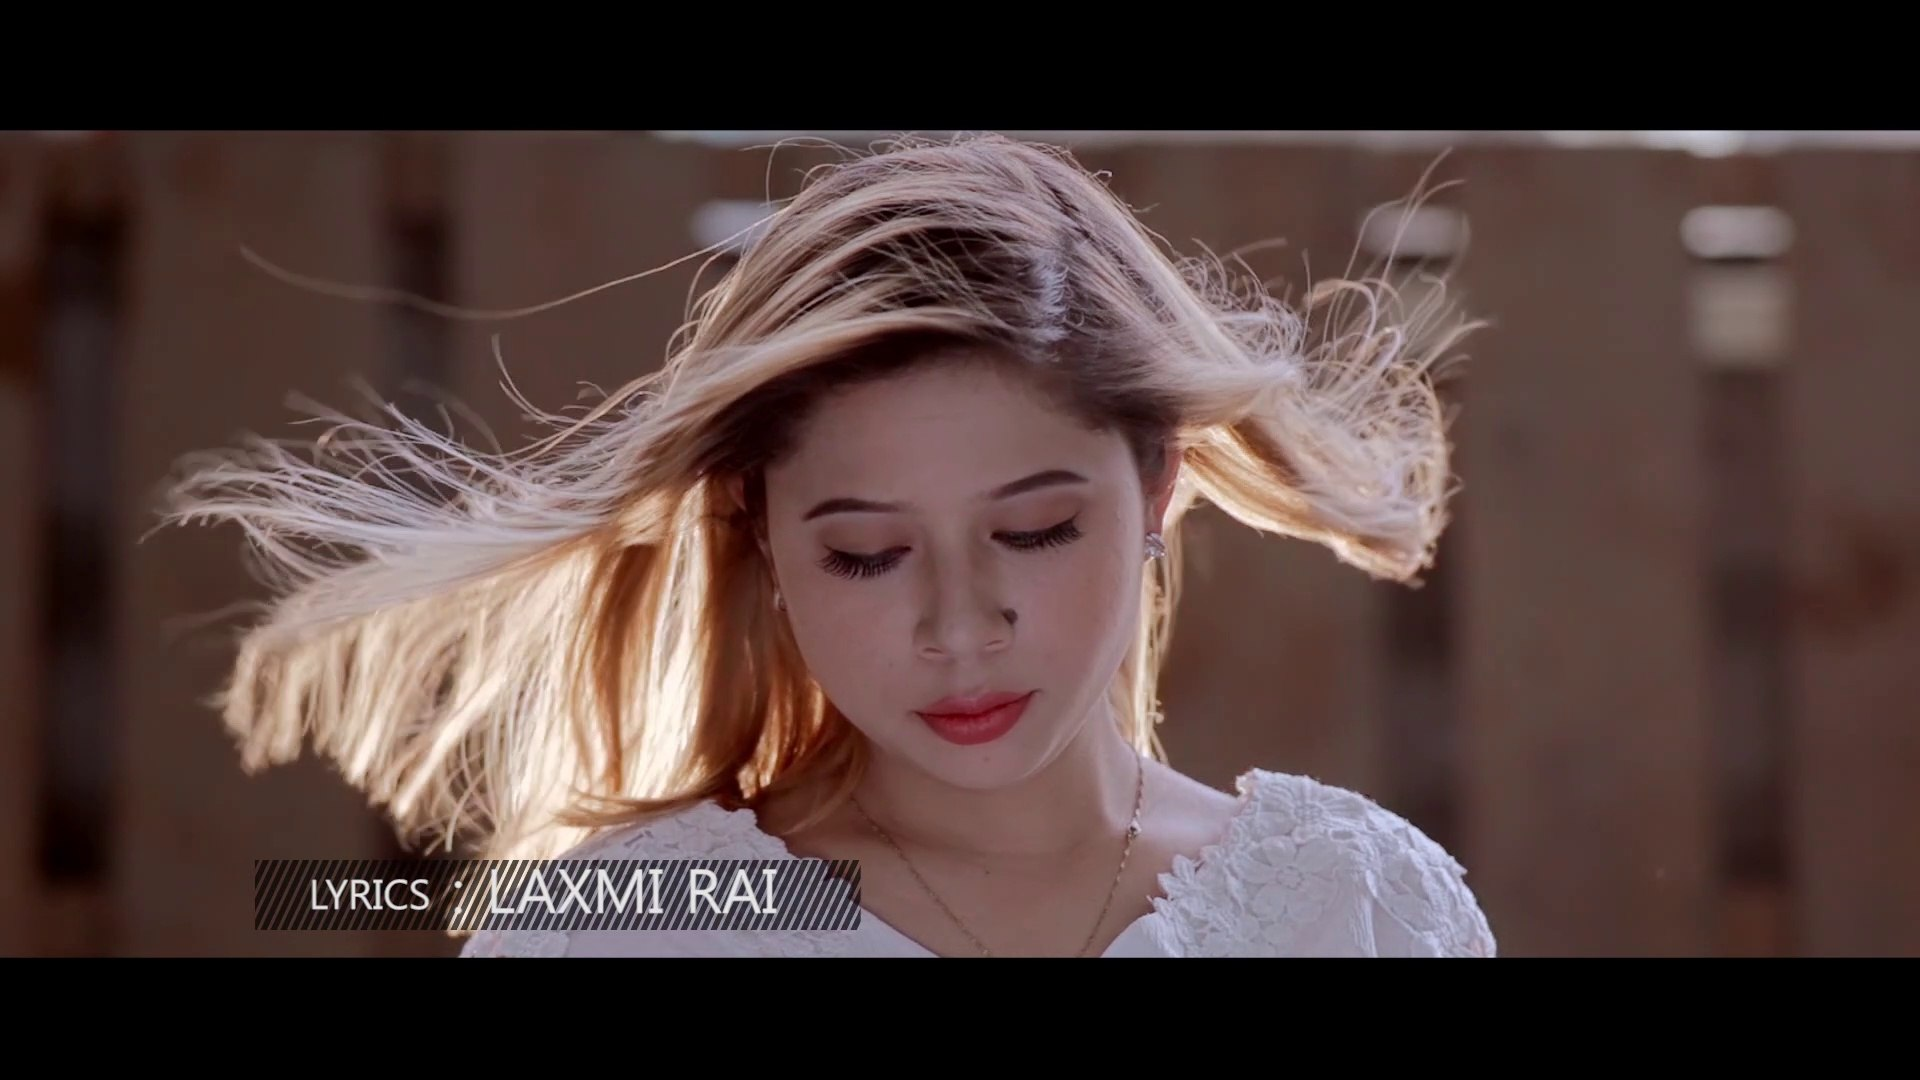 TIMILAI MAILE | RAKESH RAI Ft. Roshan, Anusha || New Nepali Pop Song 2020 [OFFICIAL MUSIC VIDEO]